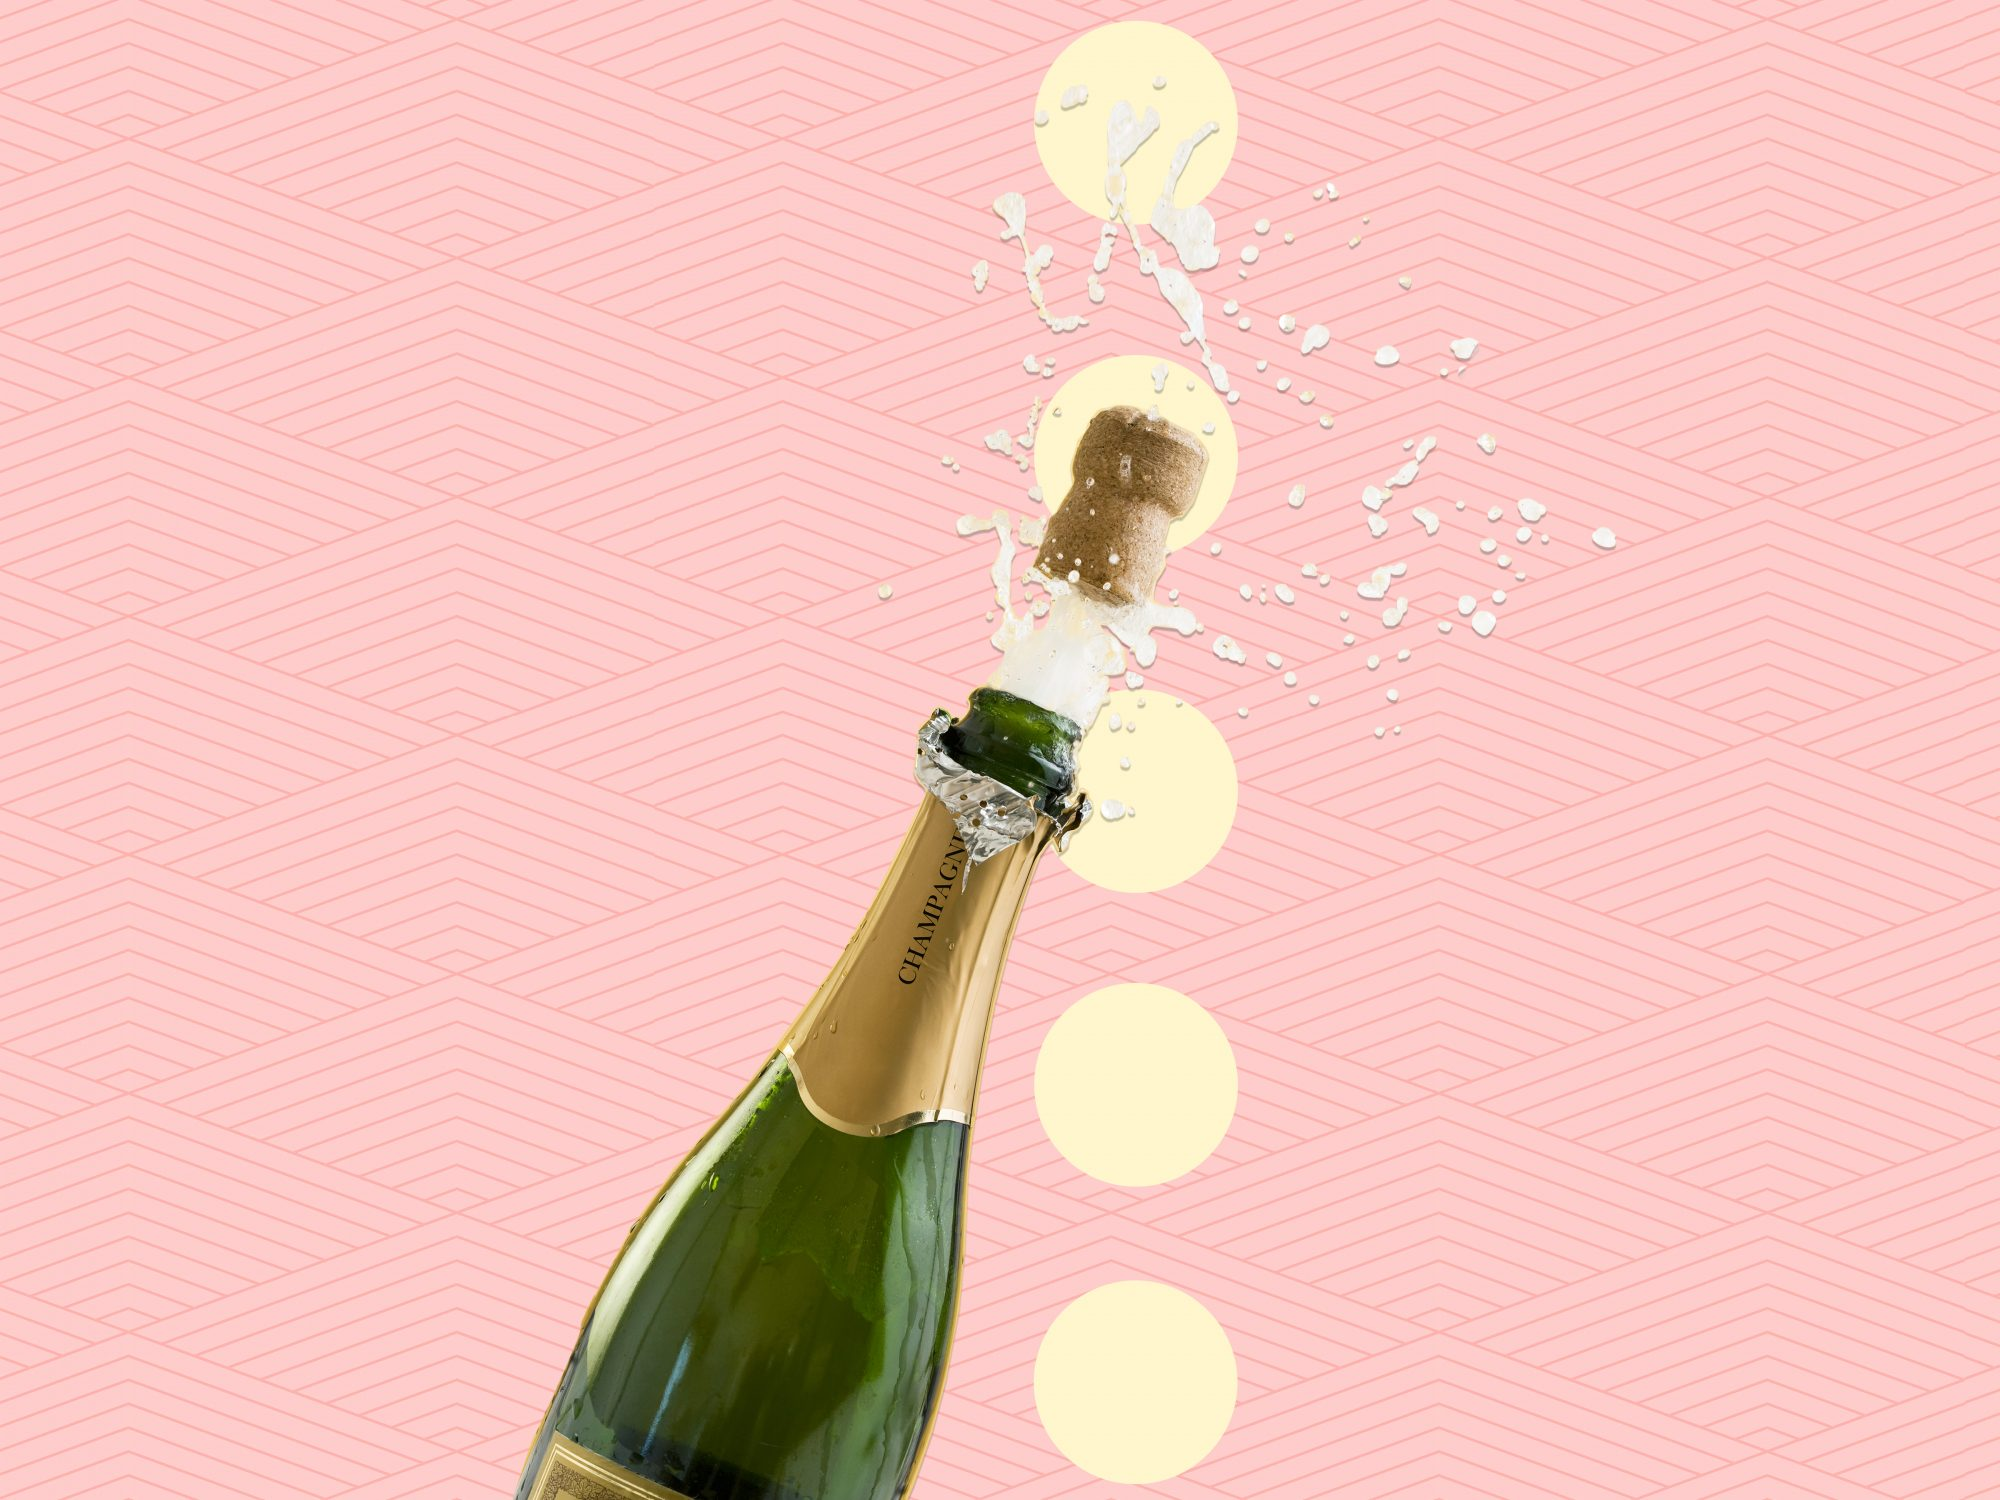 I Tried This Hack for Saving Leftover Champagne and It Totally Worked